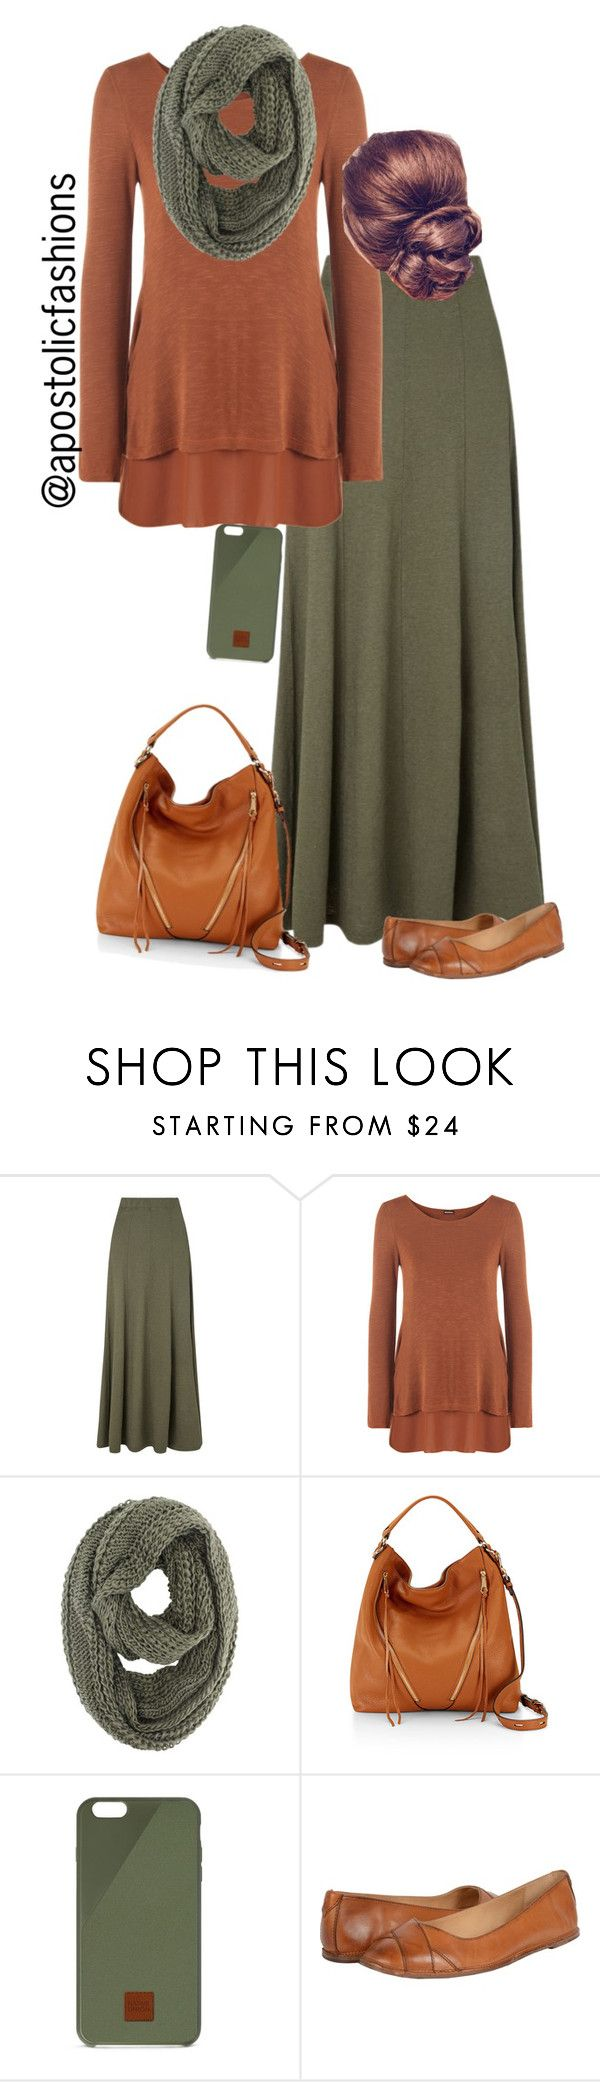 """""""Apostolic Fashions #968"""" by apostolicfashions on Polyvore featuring EAST, WearAll, Rebecca Minkoff, Native Union and Frye"""